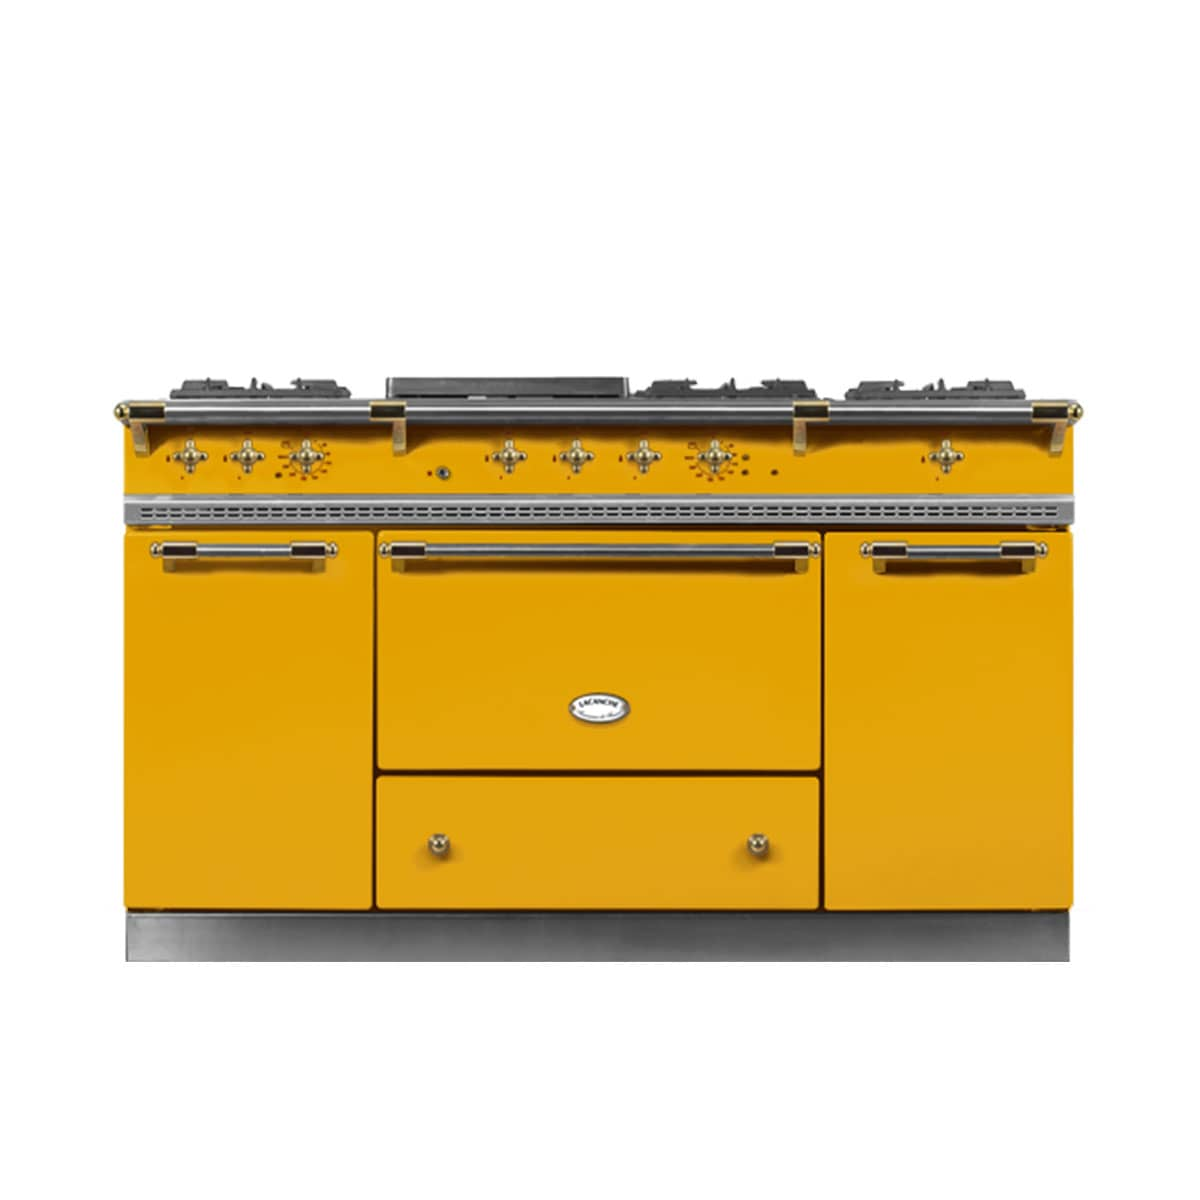 Beyond Smeg: 10 Colorful Appliances to Brighten Up Your Kitchen: gallery image 3